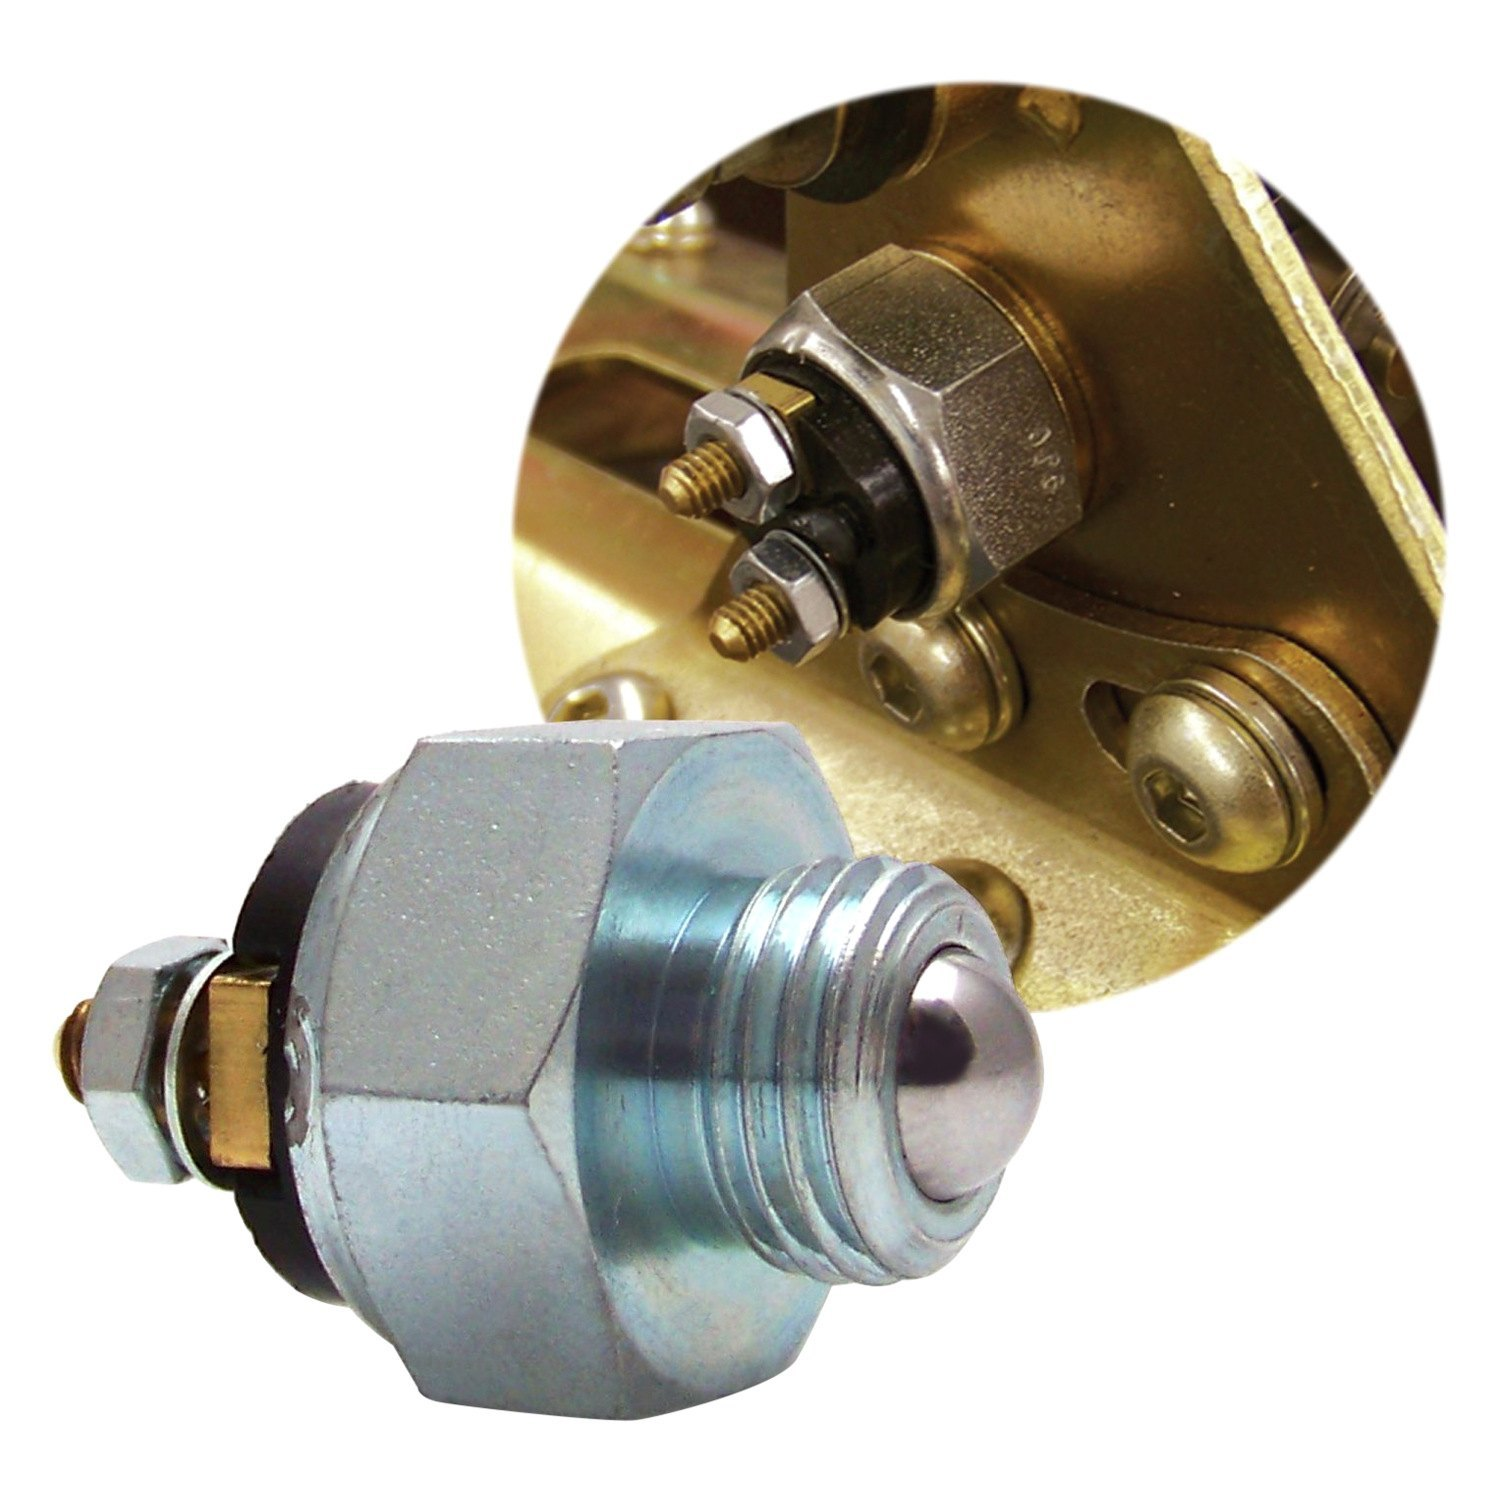 Neutral Safety Switch : American shifter ascswt neutral safety switch